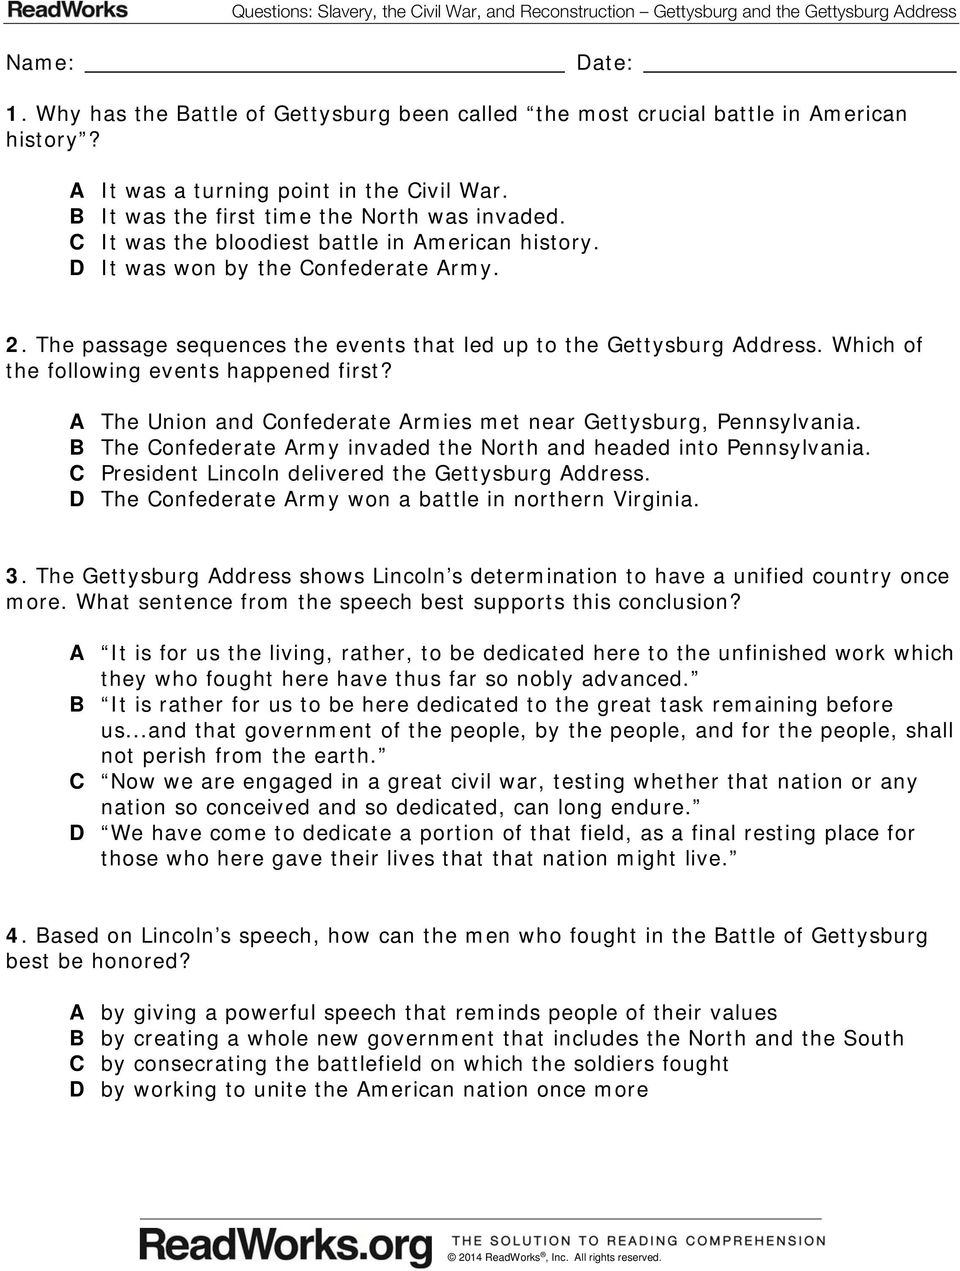 Essay on the gettysburg address